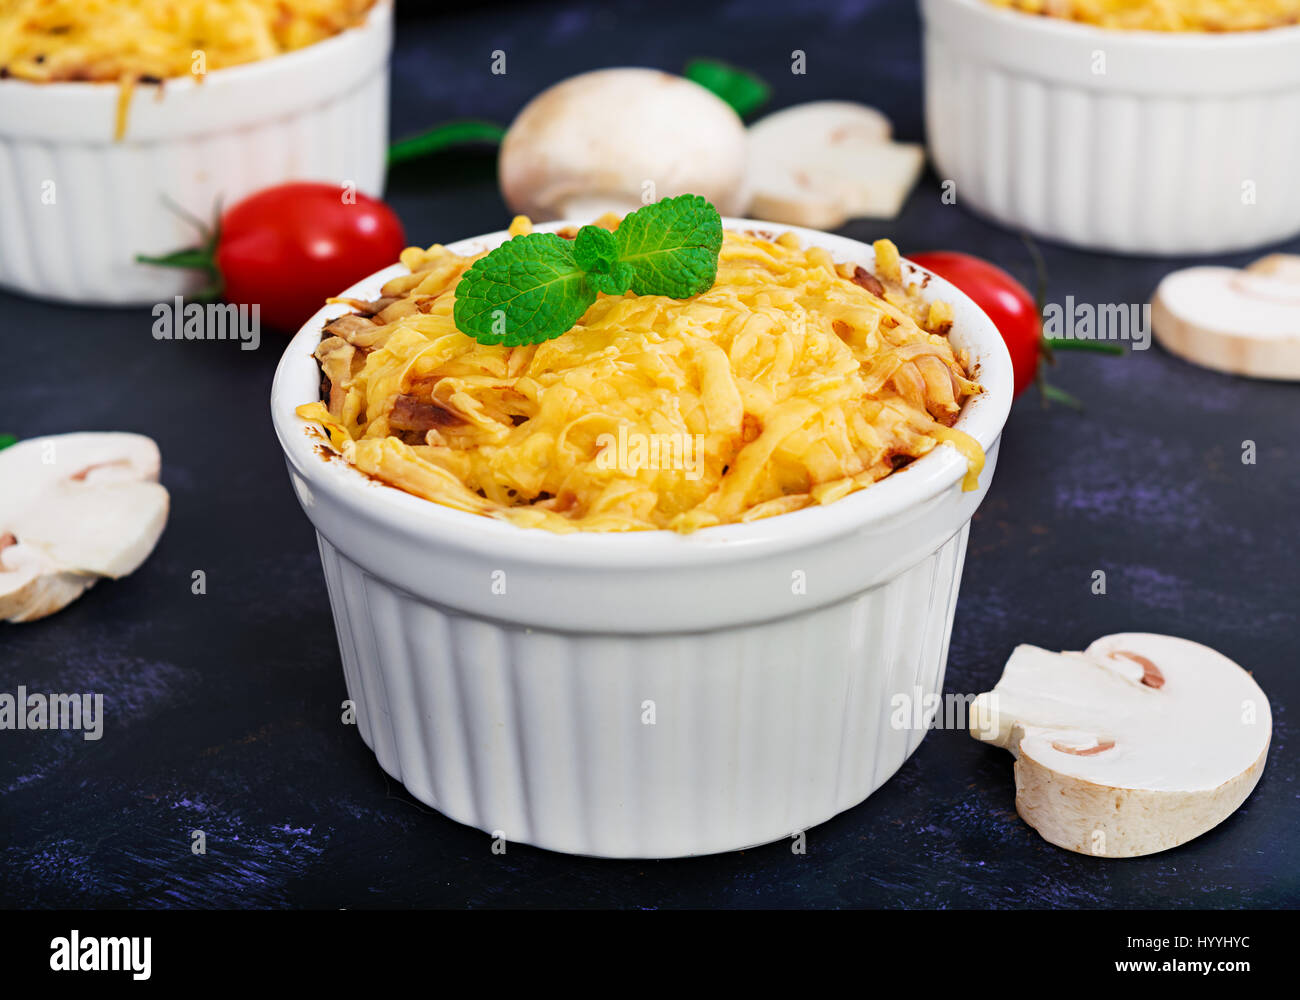 How to cook julienne with chicken